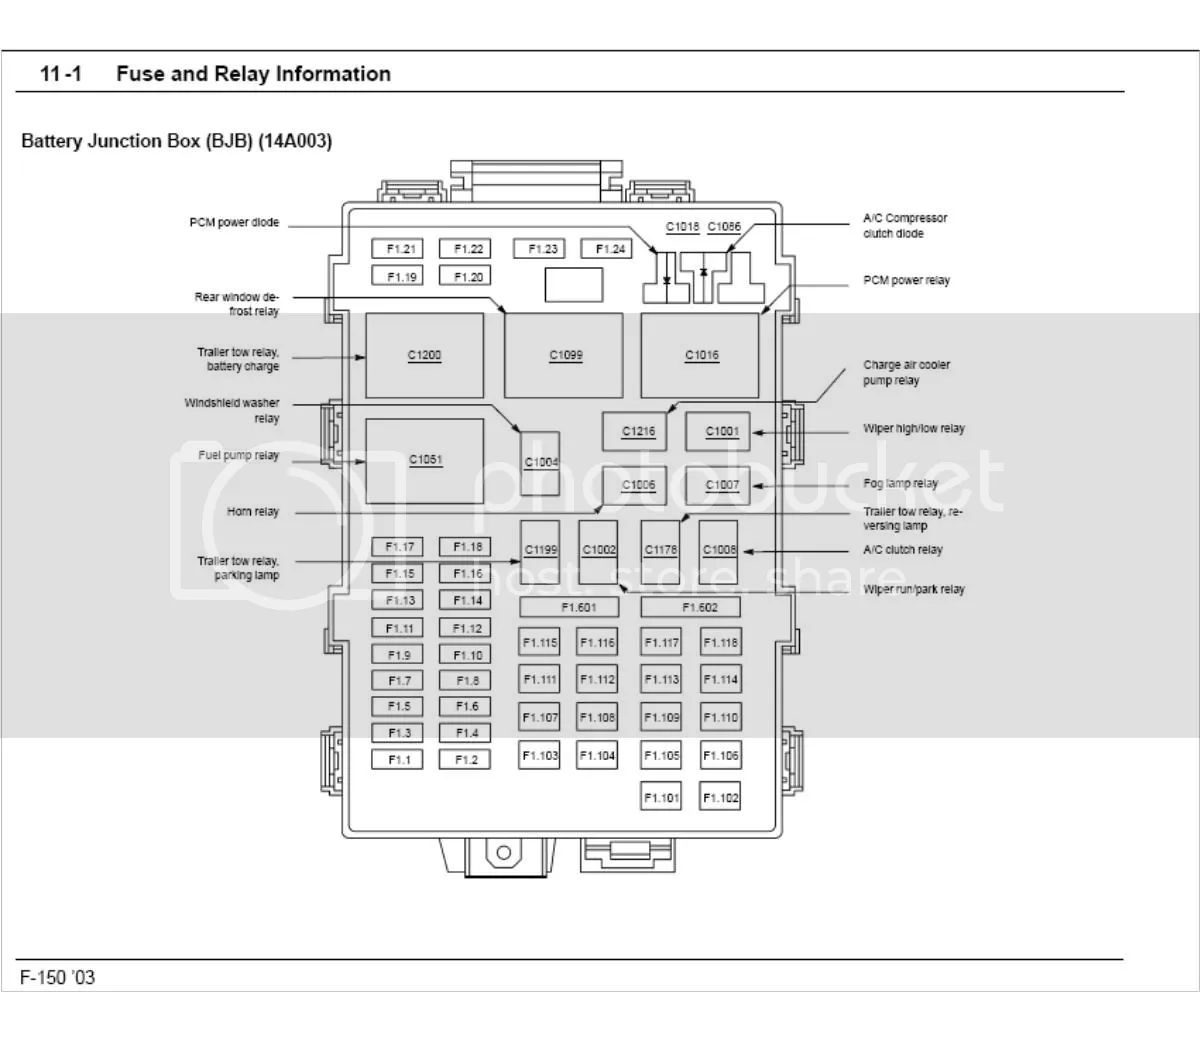 2005 ford windstar fuse box diagram